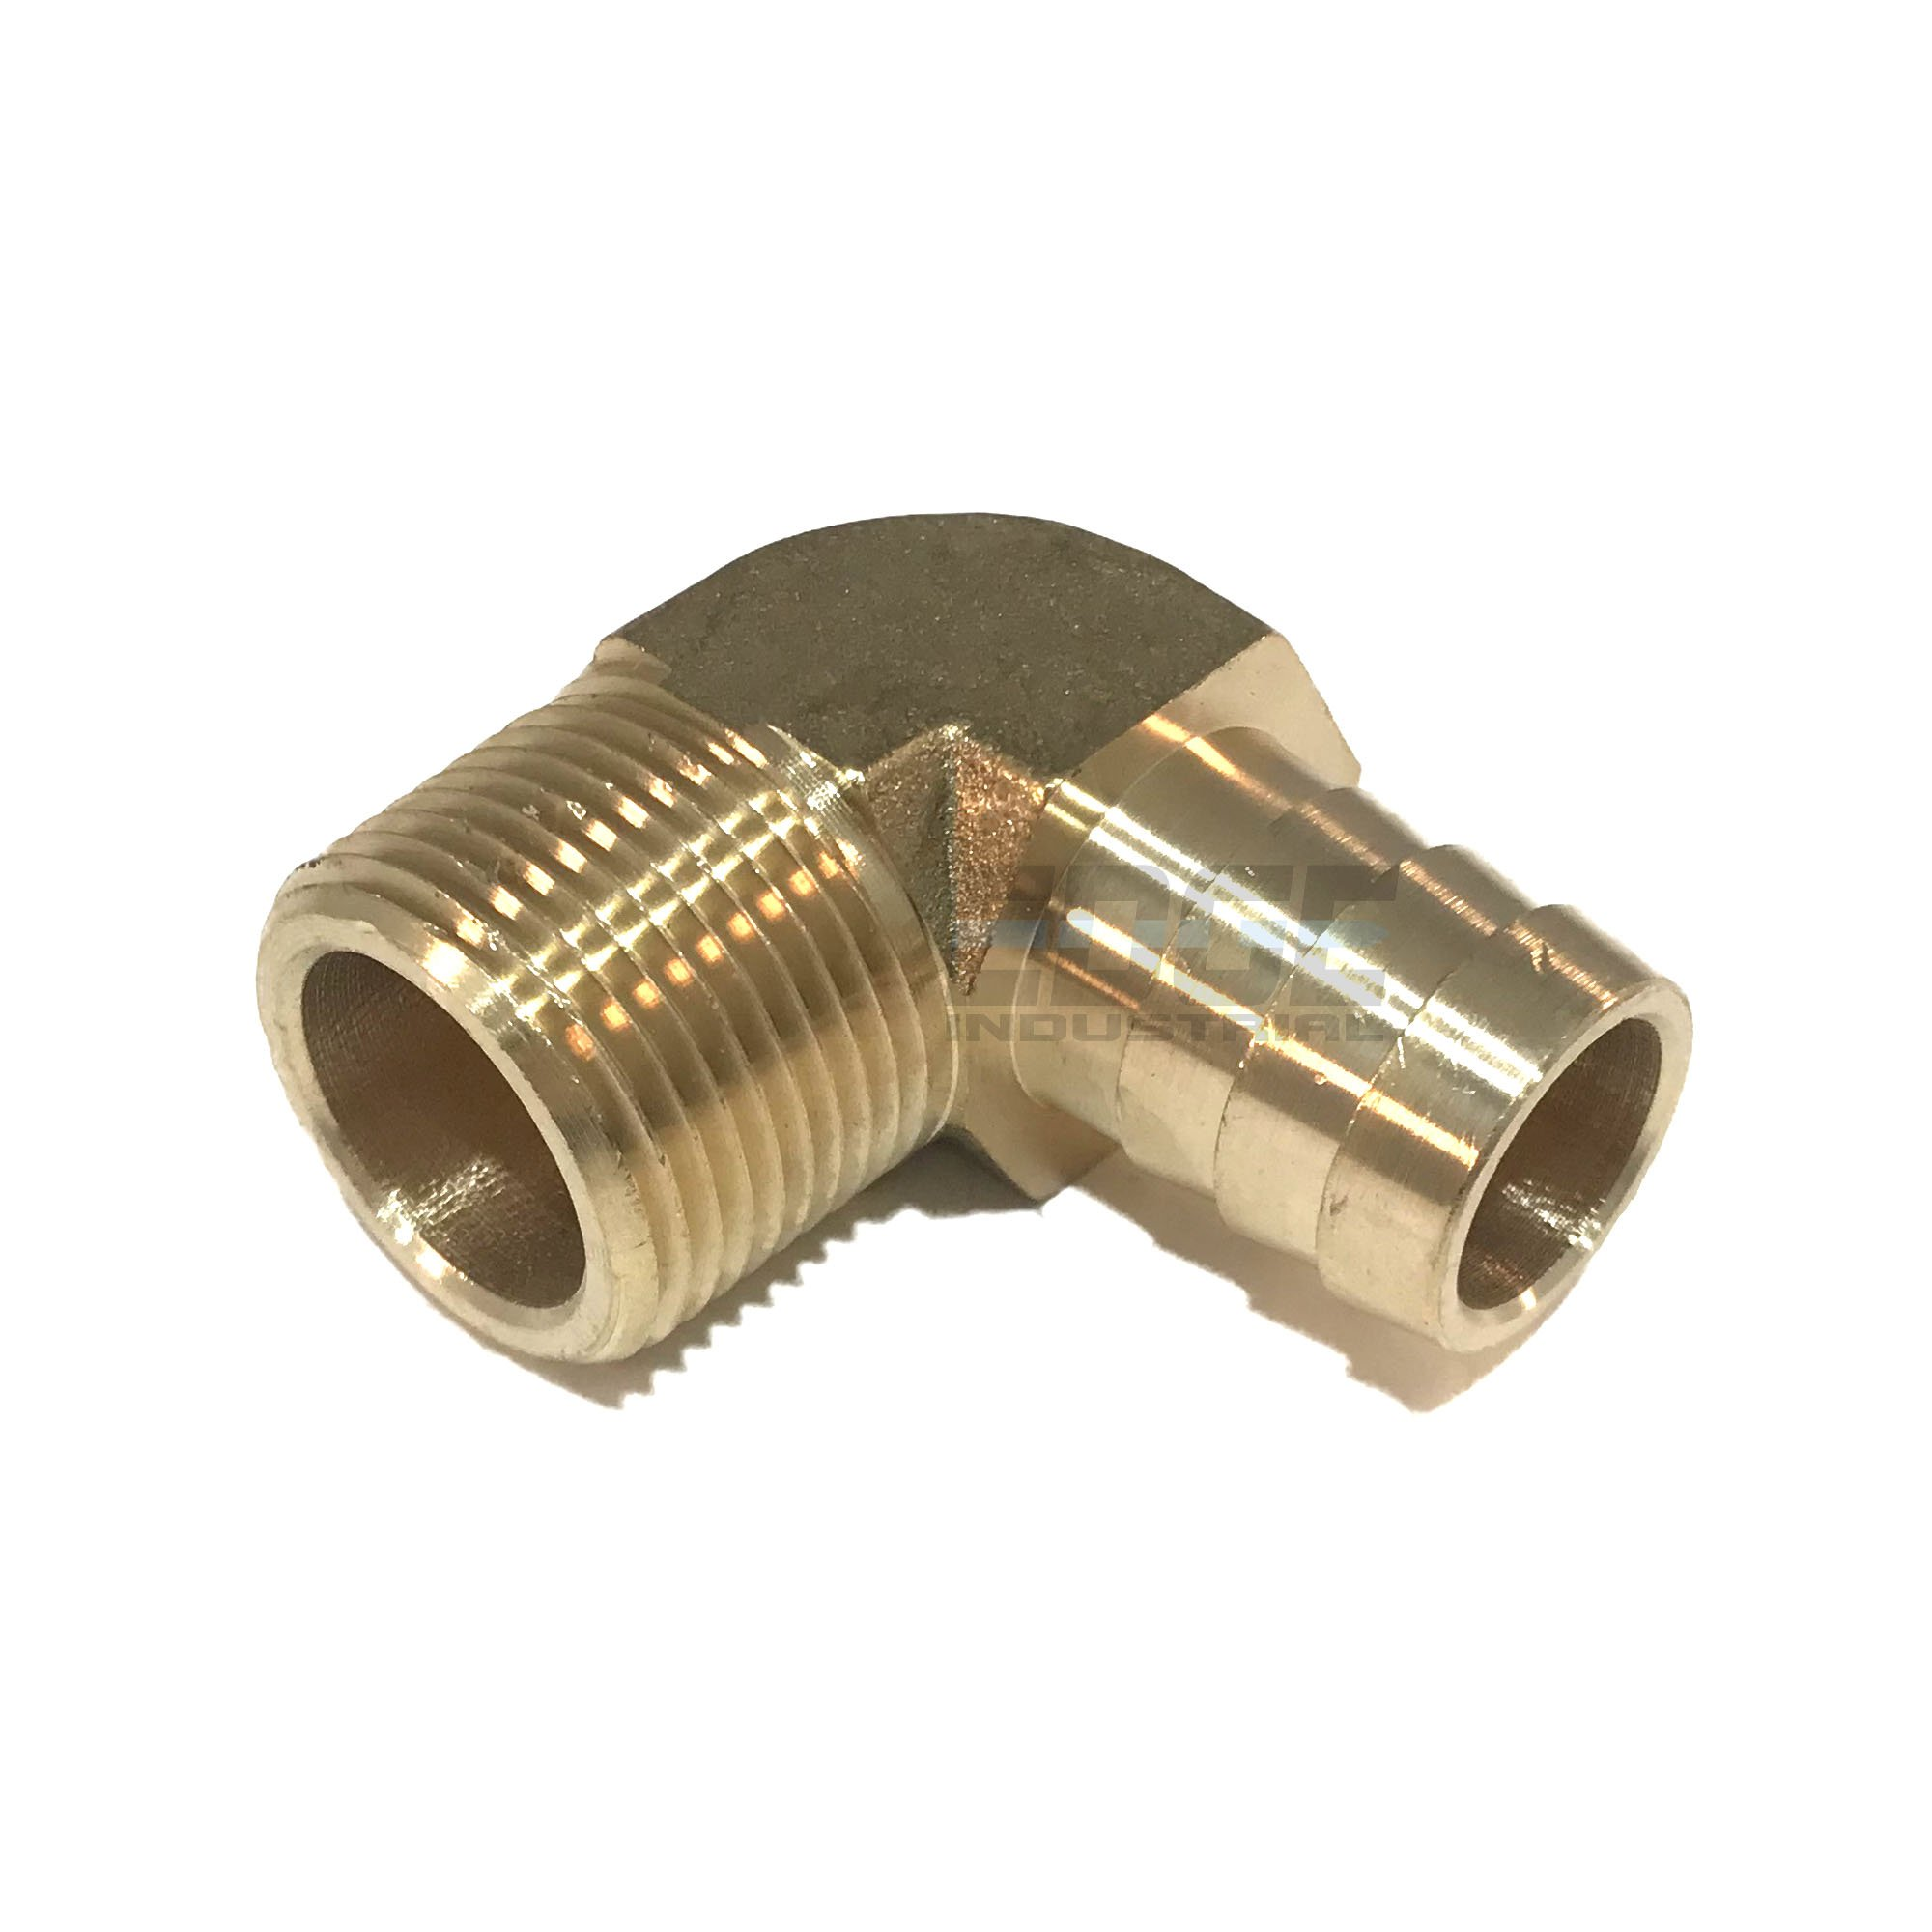 EDGE INDUSTRIAL 3/4'' Hose ID to 3/4'' Male NPT MNPT 90 Degree Brass Elbow Fitting Fuel/AIR / Water/Oil / Gas/WOG